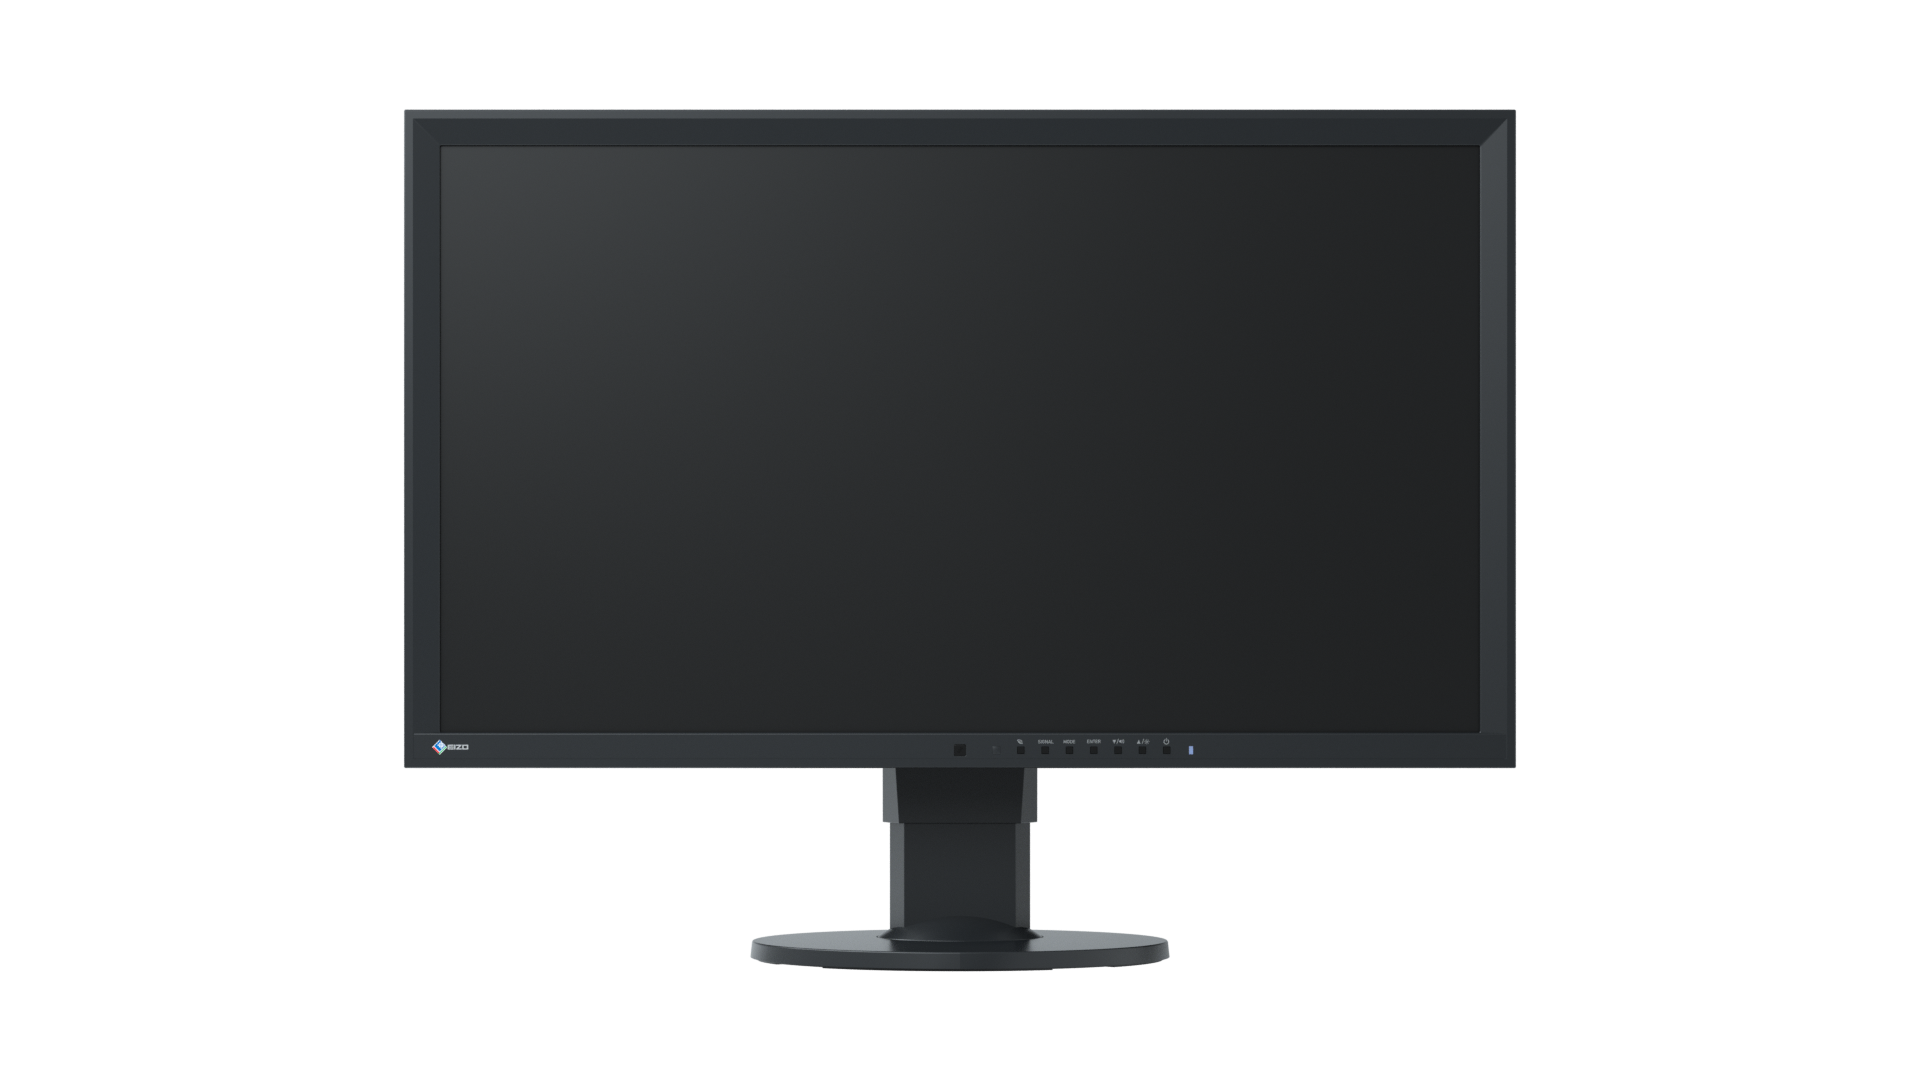 EIZO 27 Inch Widescreen, 2560 x 1440 Black DVI DisplayPort